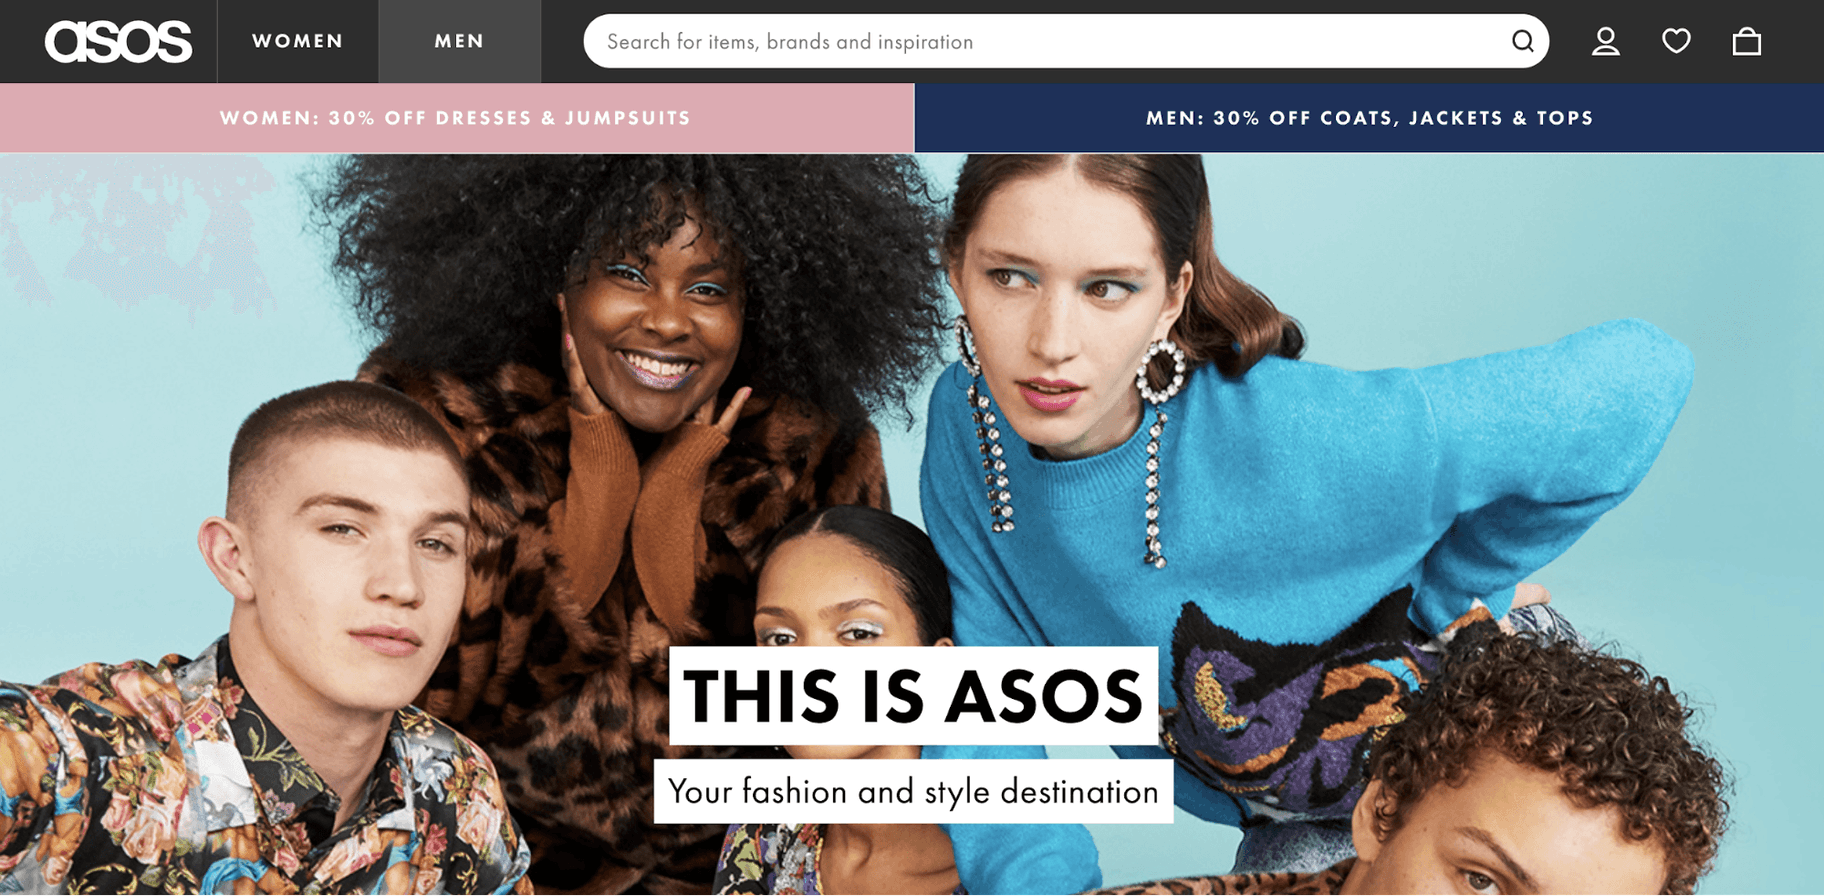 ASOS Vision statement